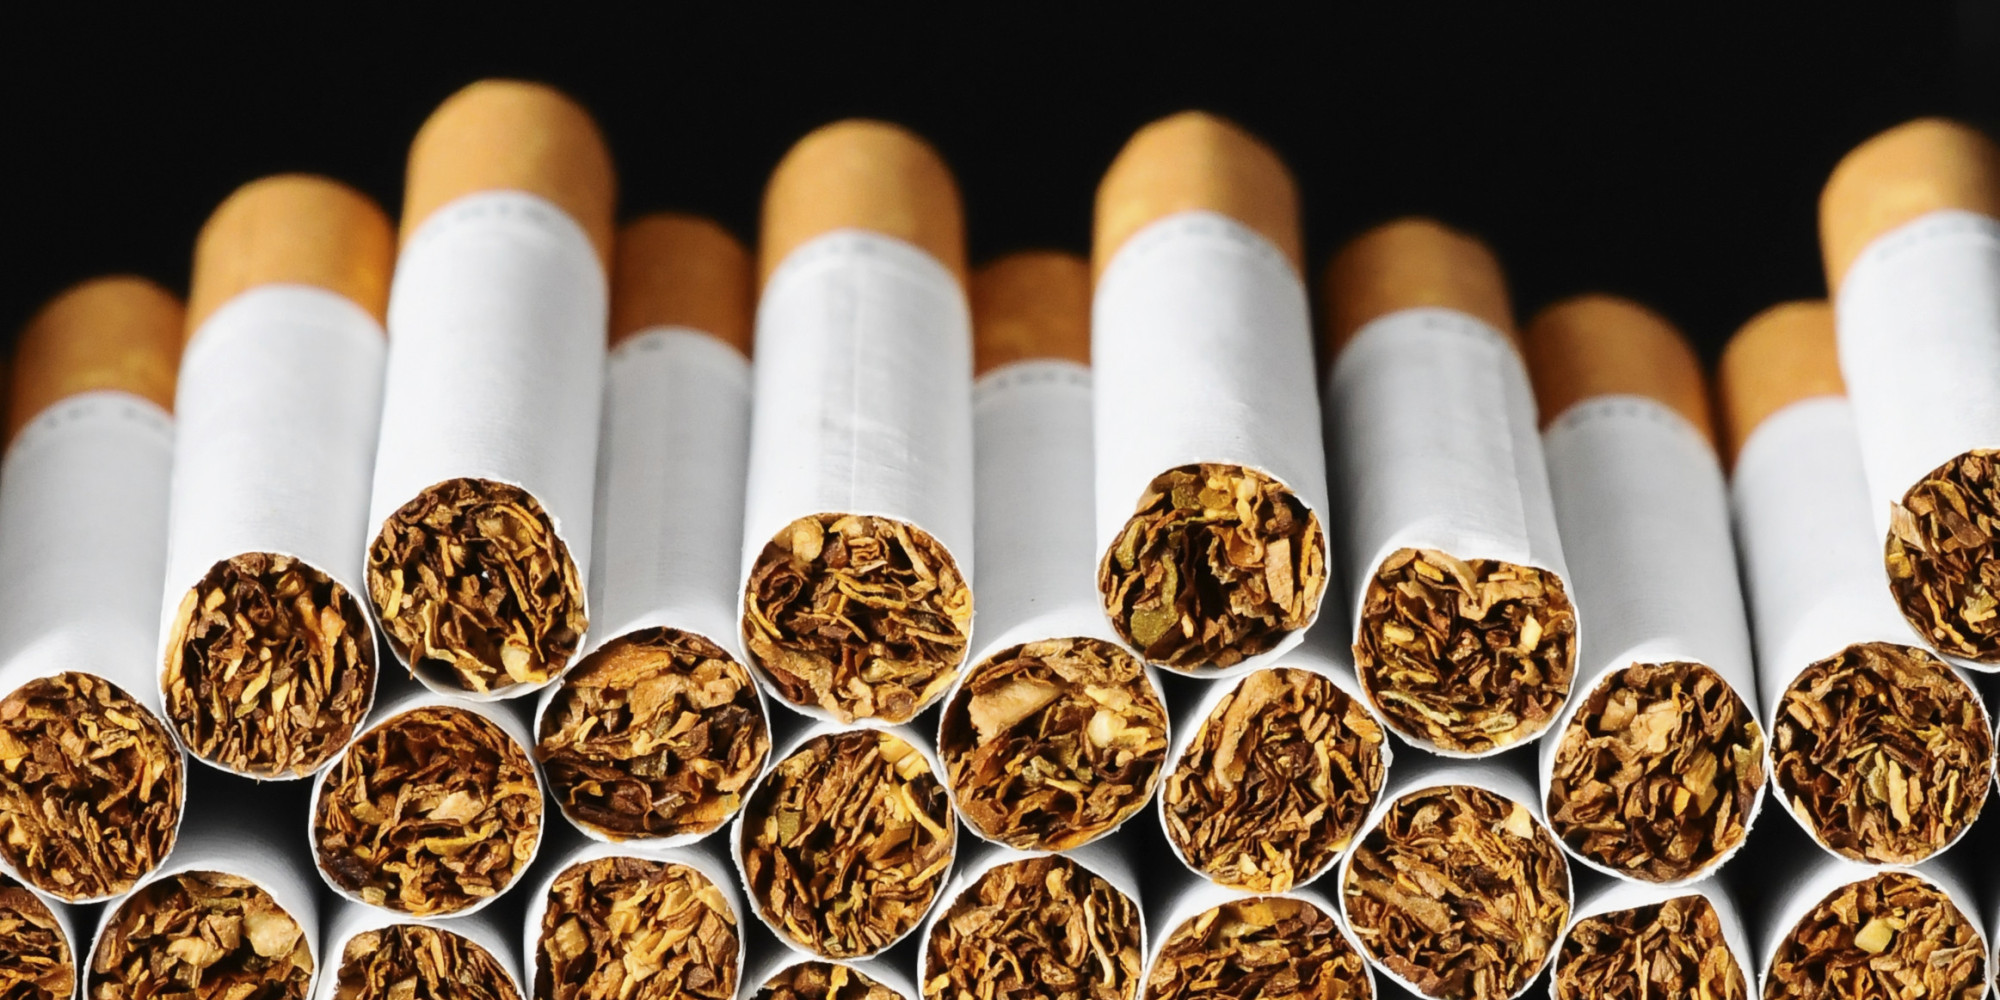 Cigarette smoking for weight loss